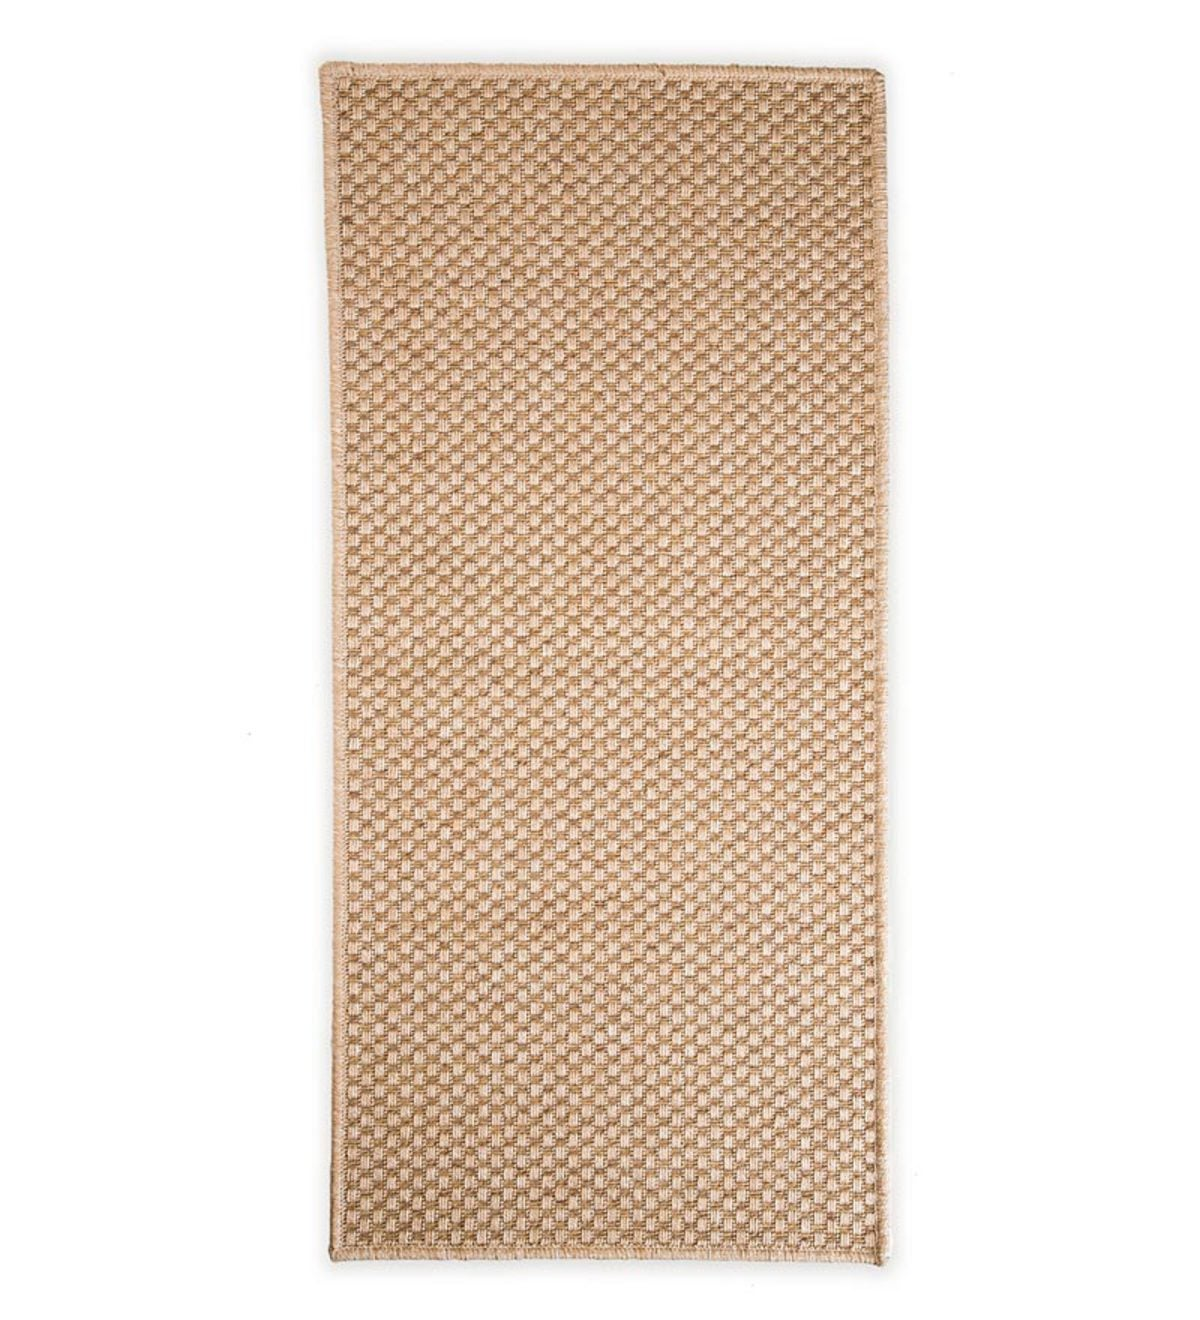 "7'10""x 10'10""Laurel Indoor and Outdoor Seagrass Look Rug In Neutral Patterns - Basket Weave"